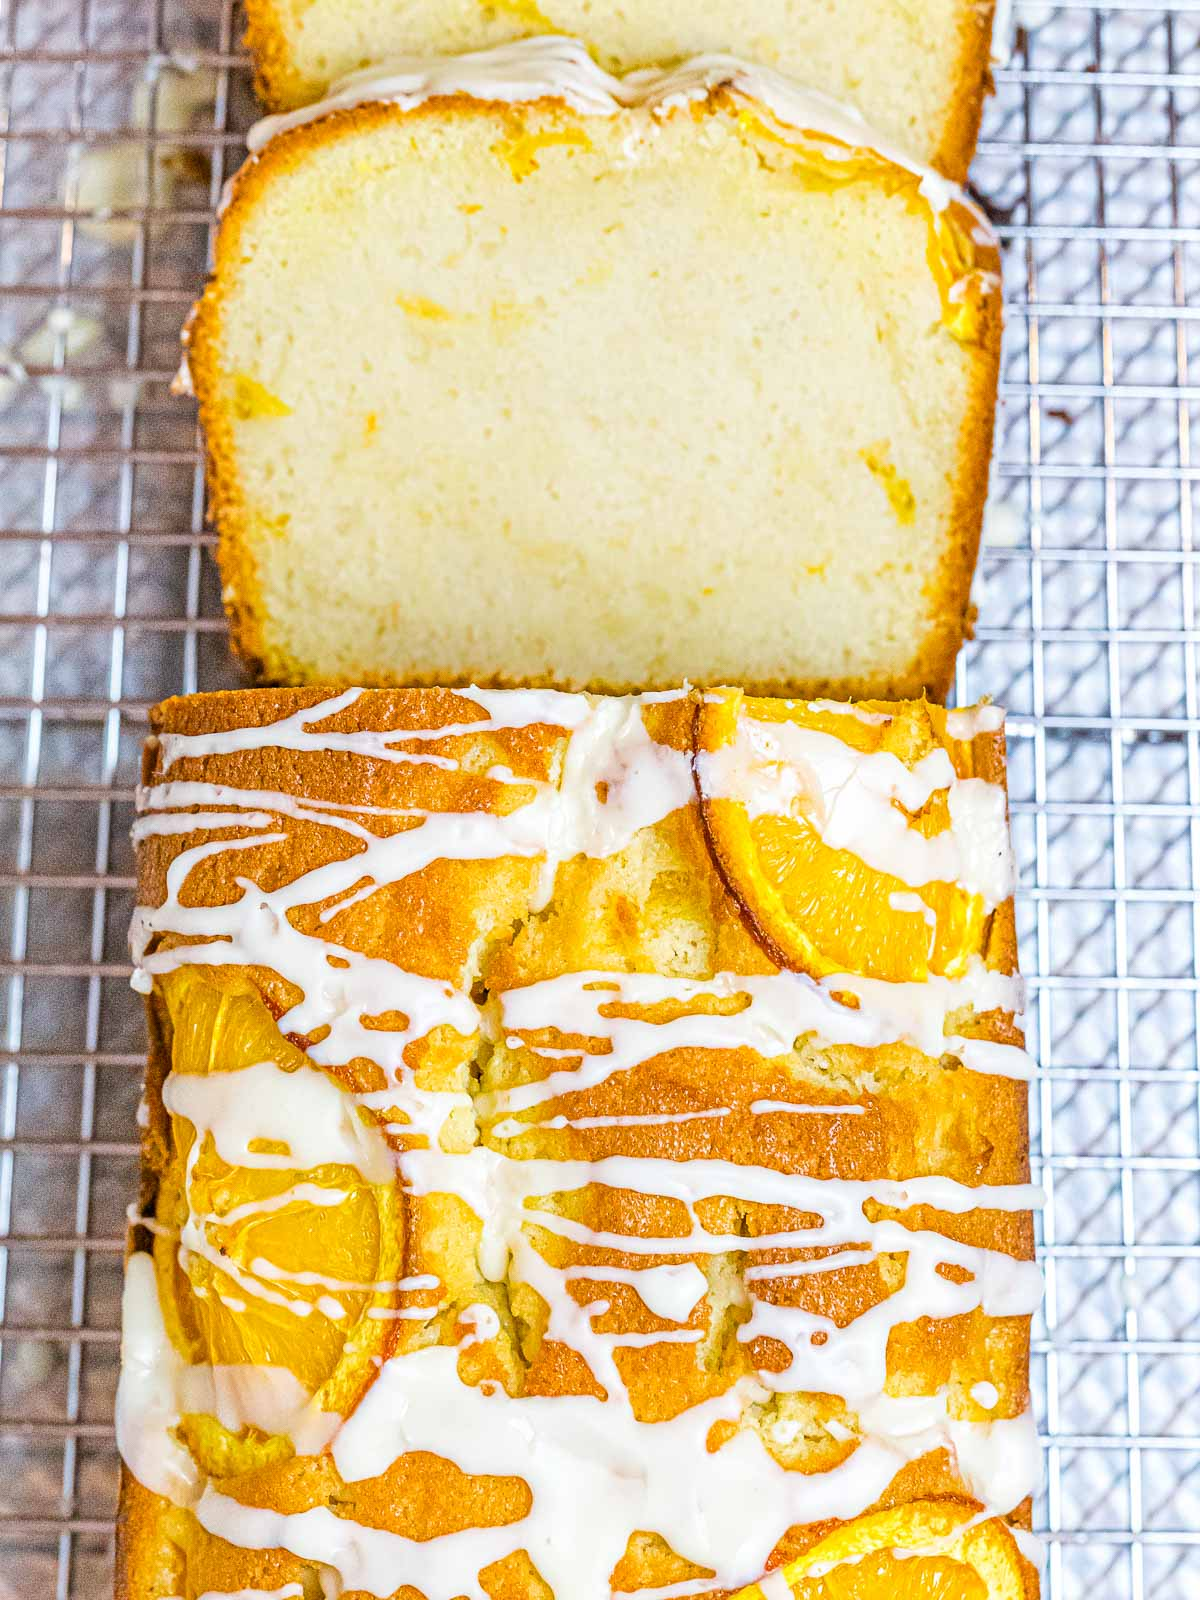 orange pound cake with glaze drizzled on top and decorated with orange slices